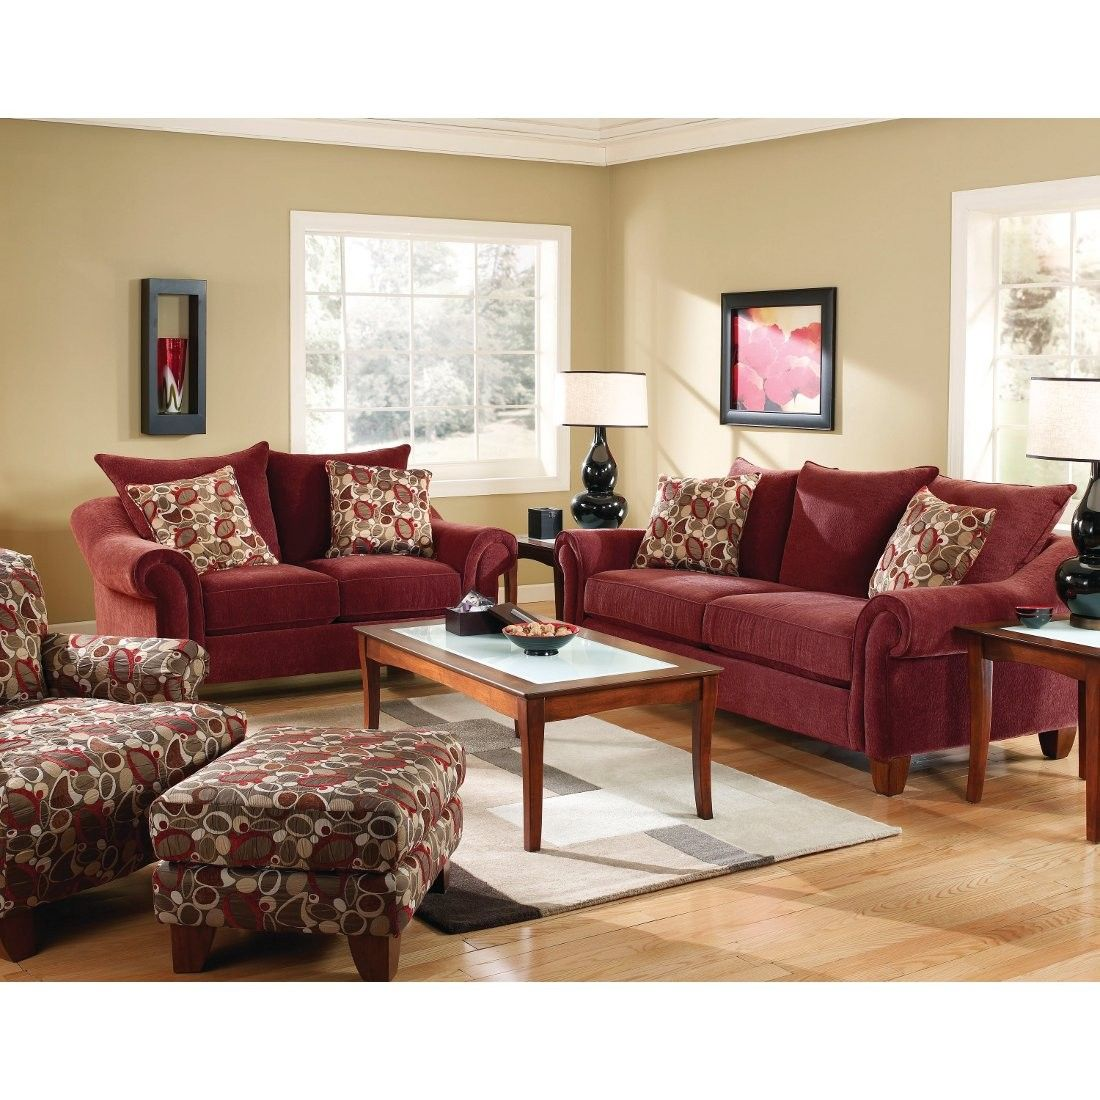 Corinthian Cebu Sofa | Wine (2833S) | Conn\'s Home Plus - $699.00 ...